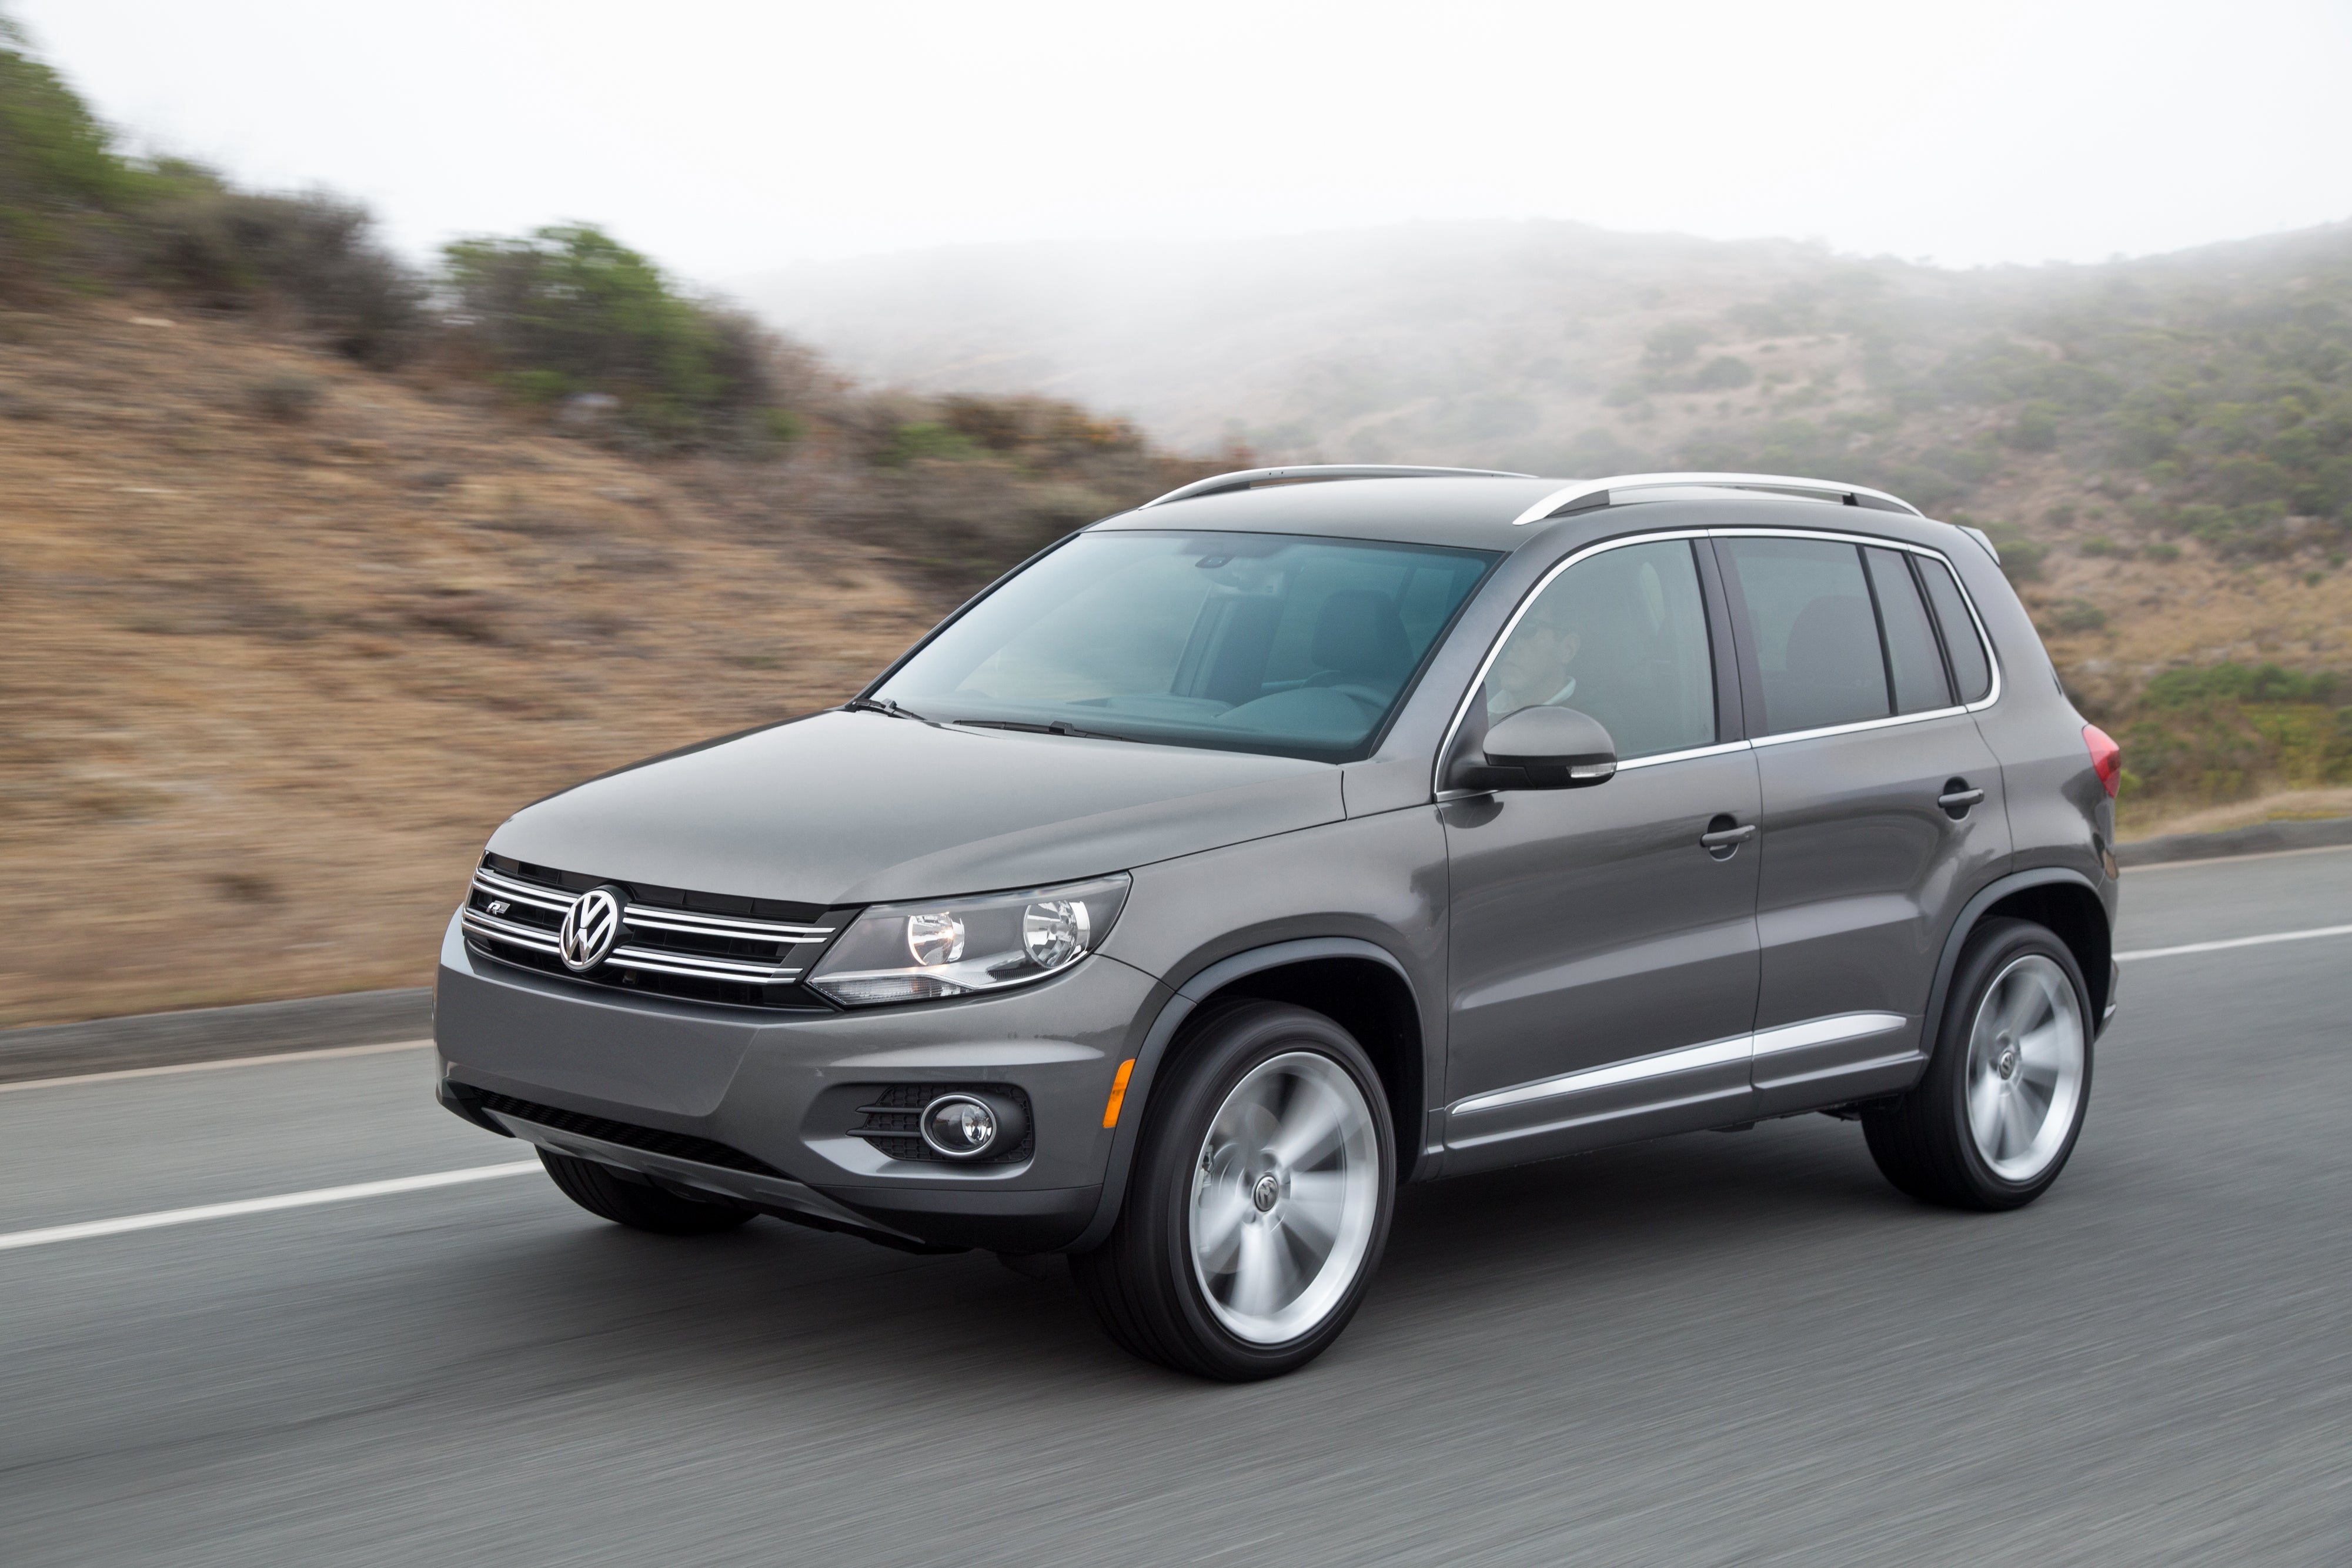 FAMILIAR SILHOUETTE: Why is it that so many CUVs look alike? This boxy body is familiar but there are a few nice design notes that distinguish this VW.